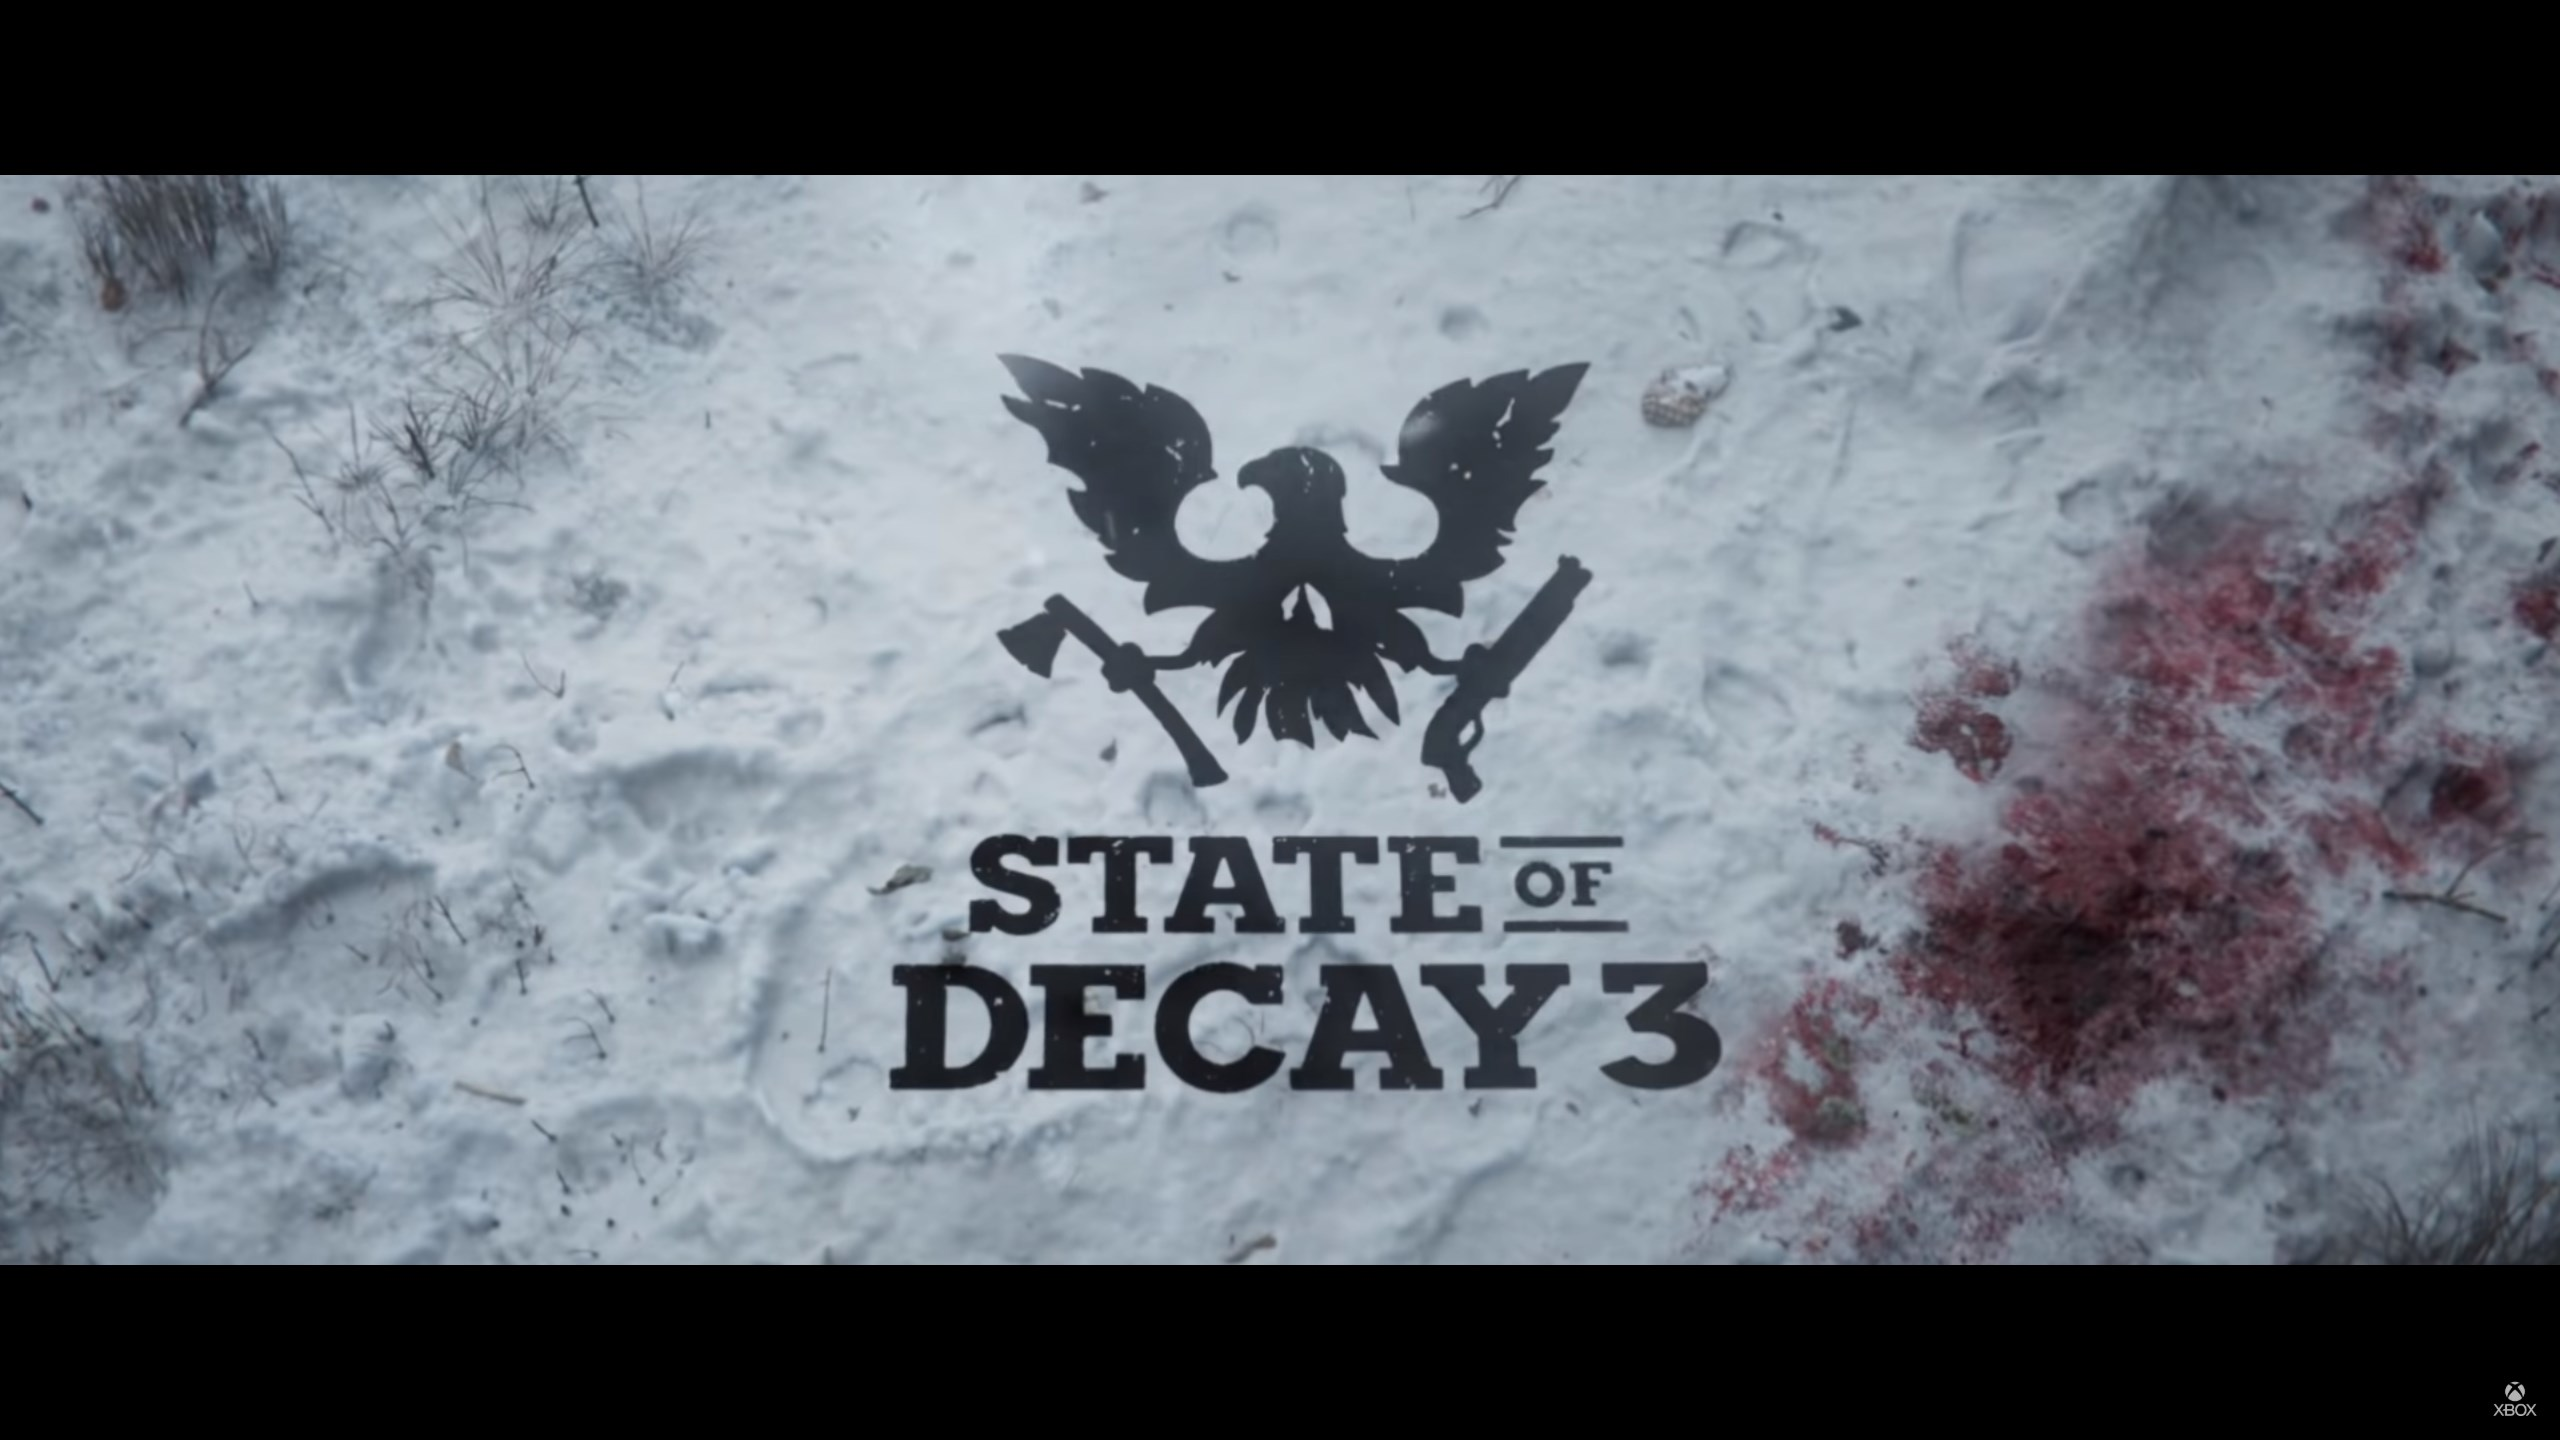 State of Decay 3 Featured Image